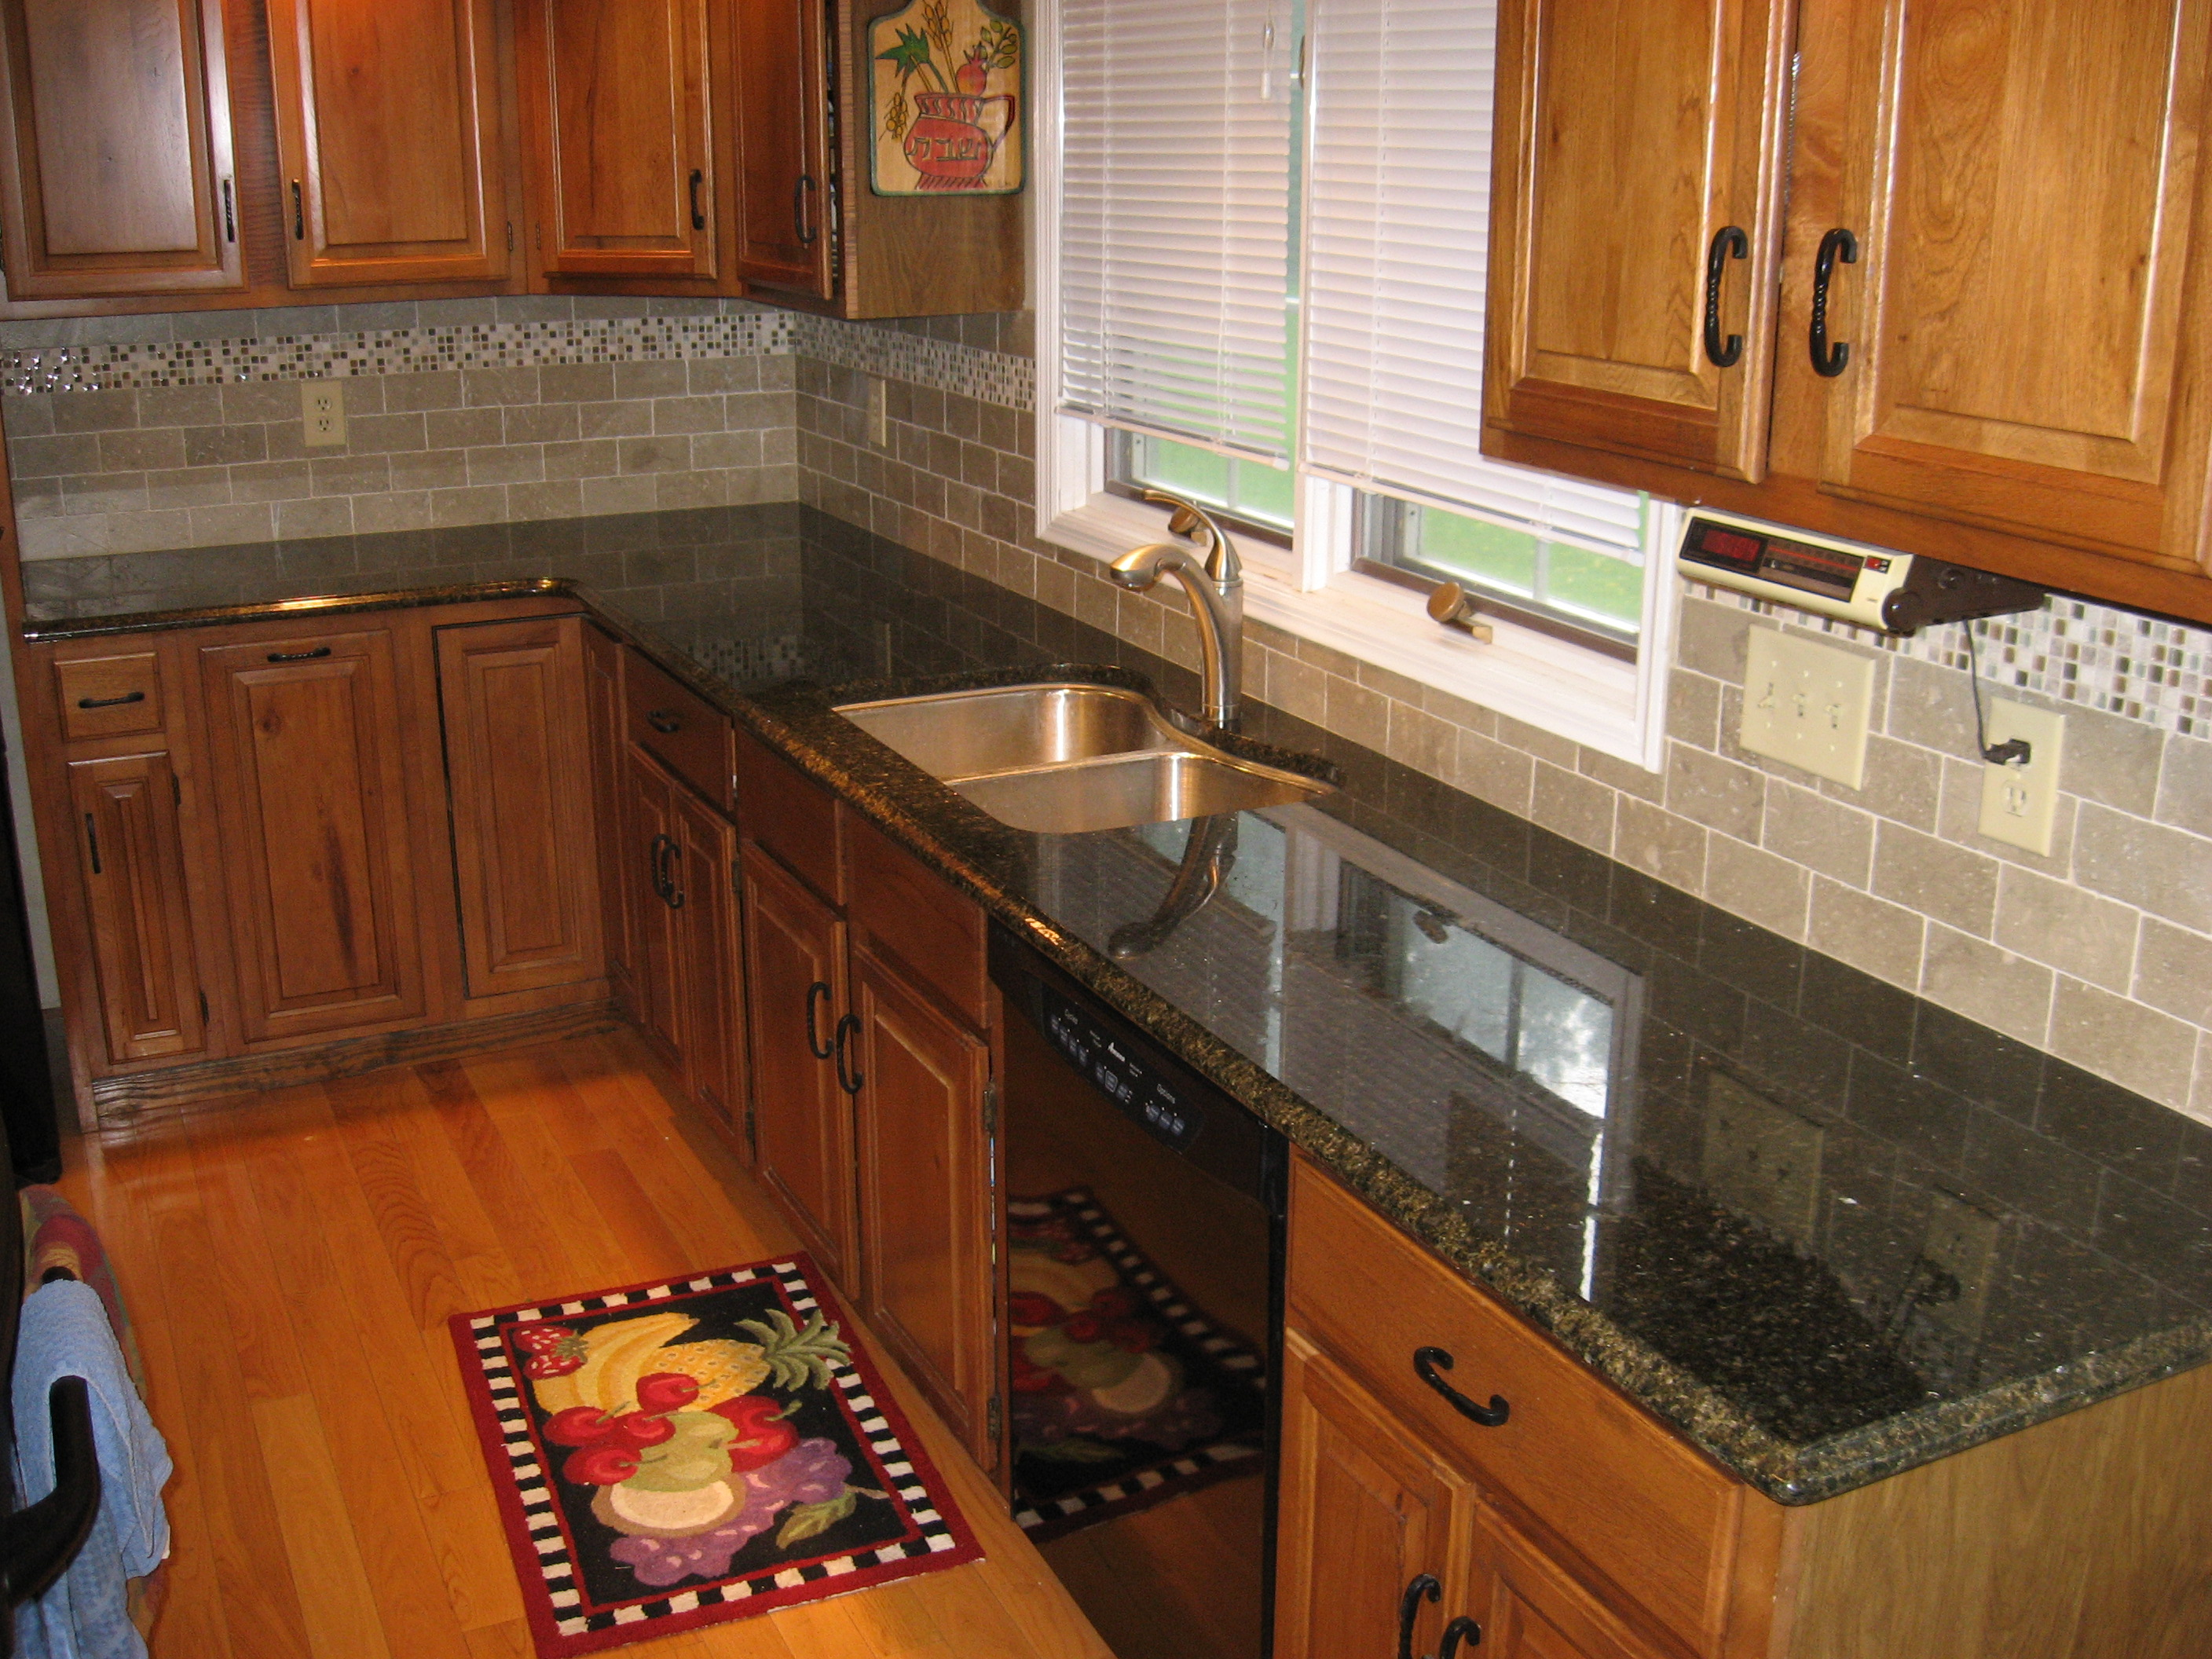 New kitchen backsplash with tumbled limestone subway tile and mixed